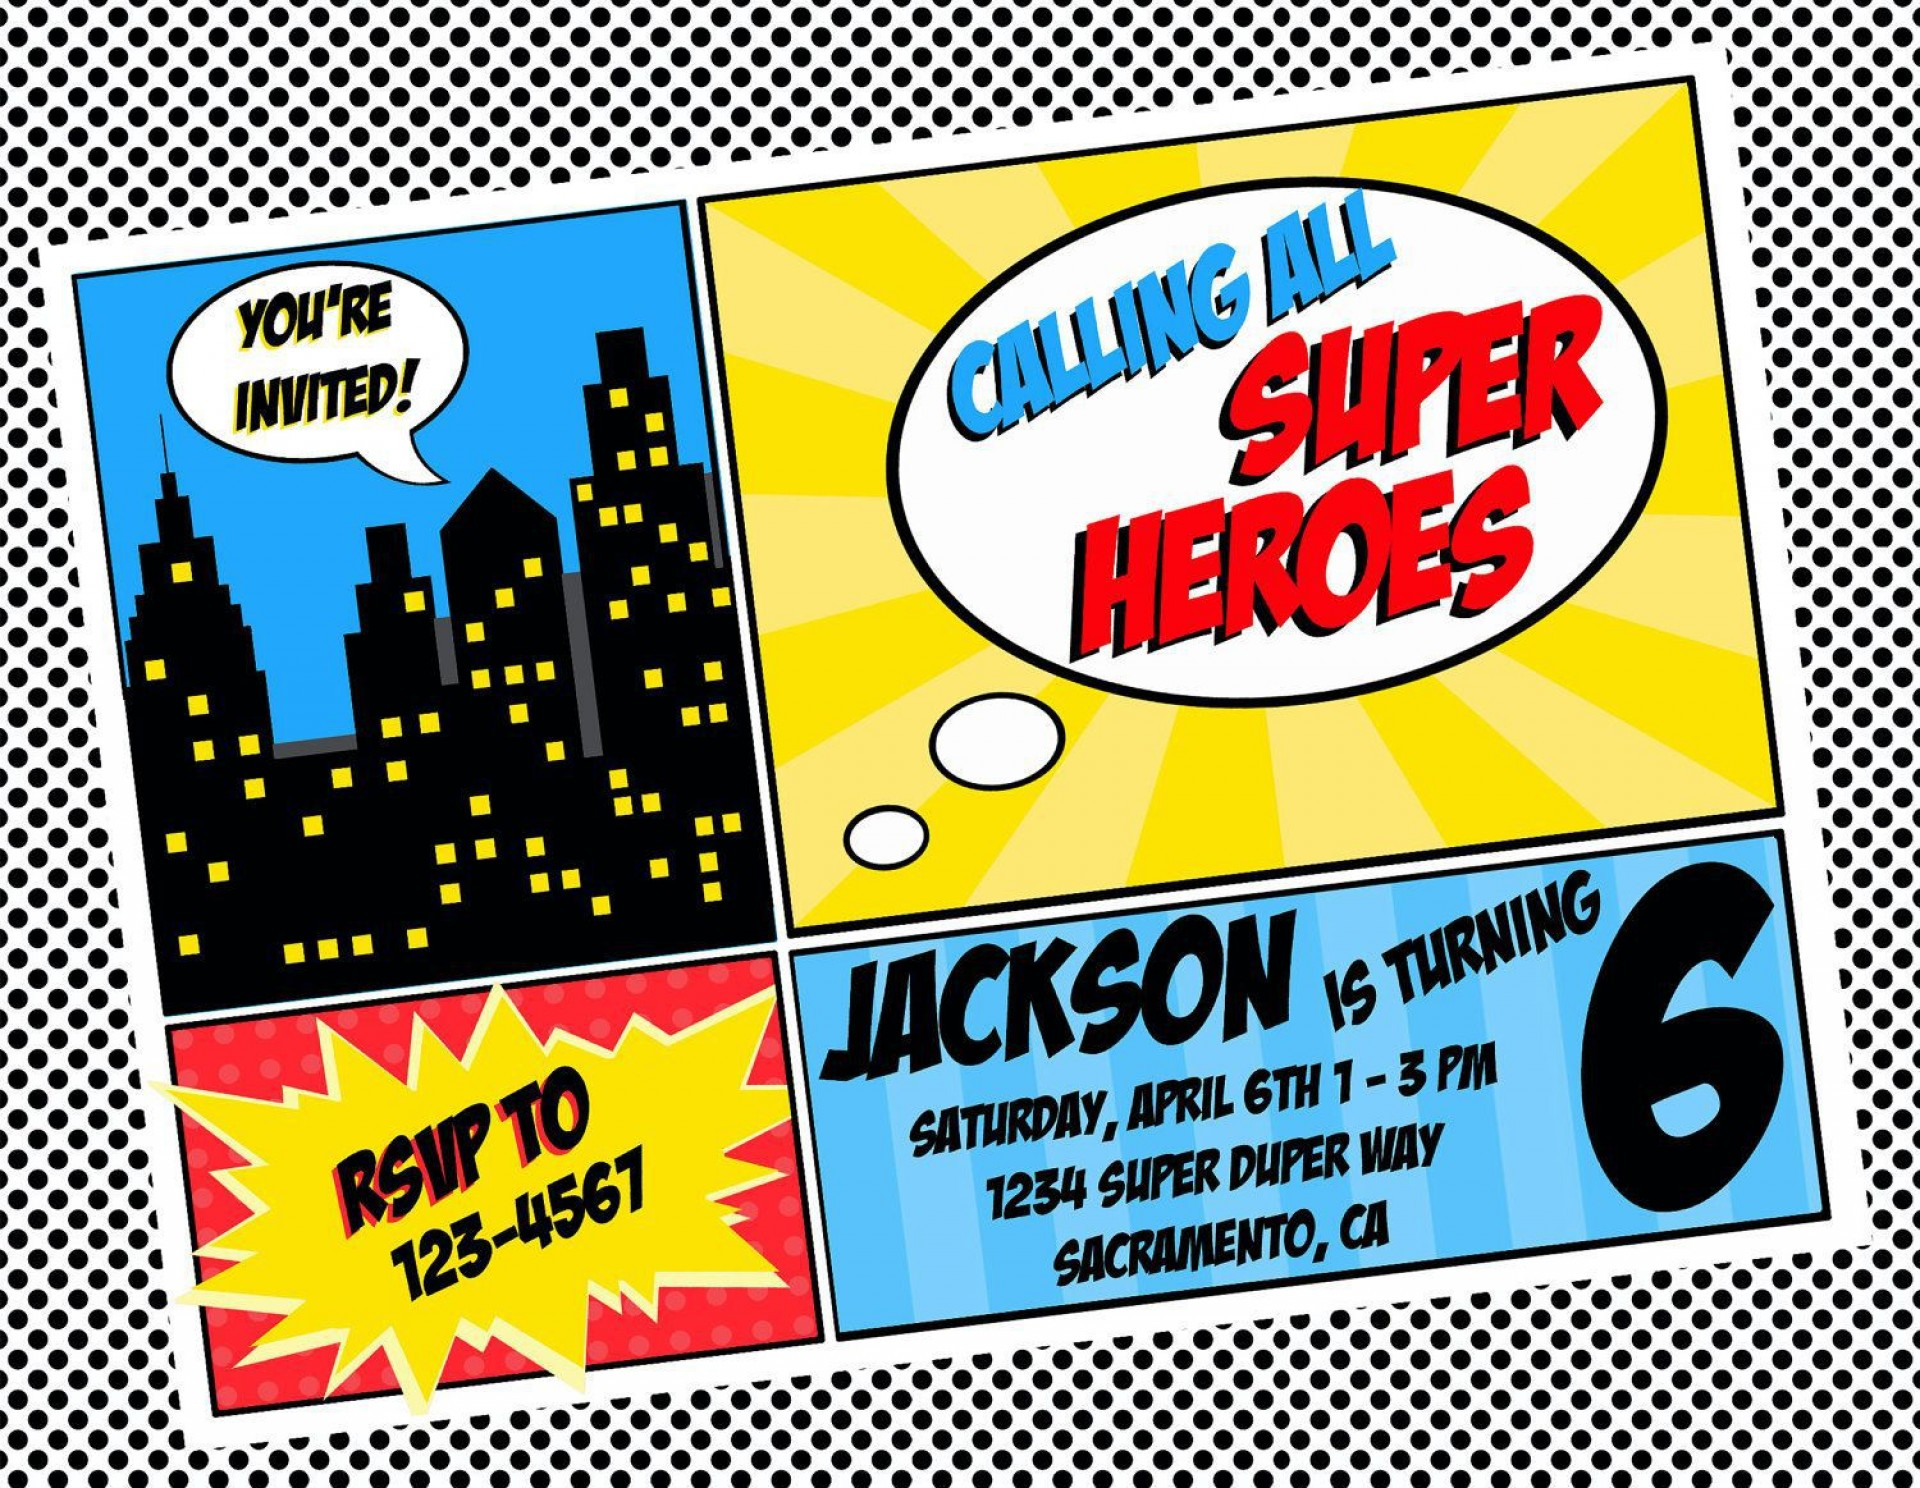 001 Outstanding Superhero Invitation Template Free Picture  Newspaper Party Birthday Invite1920